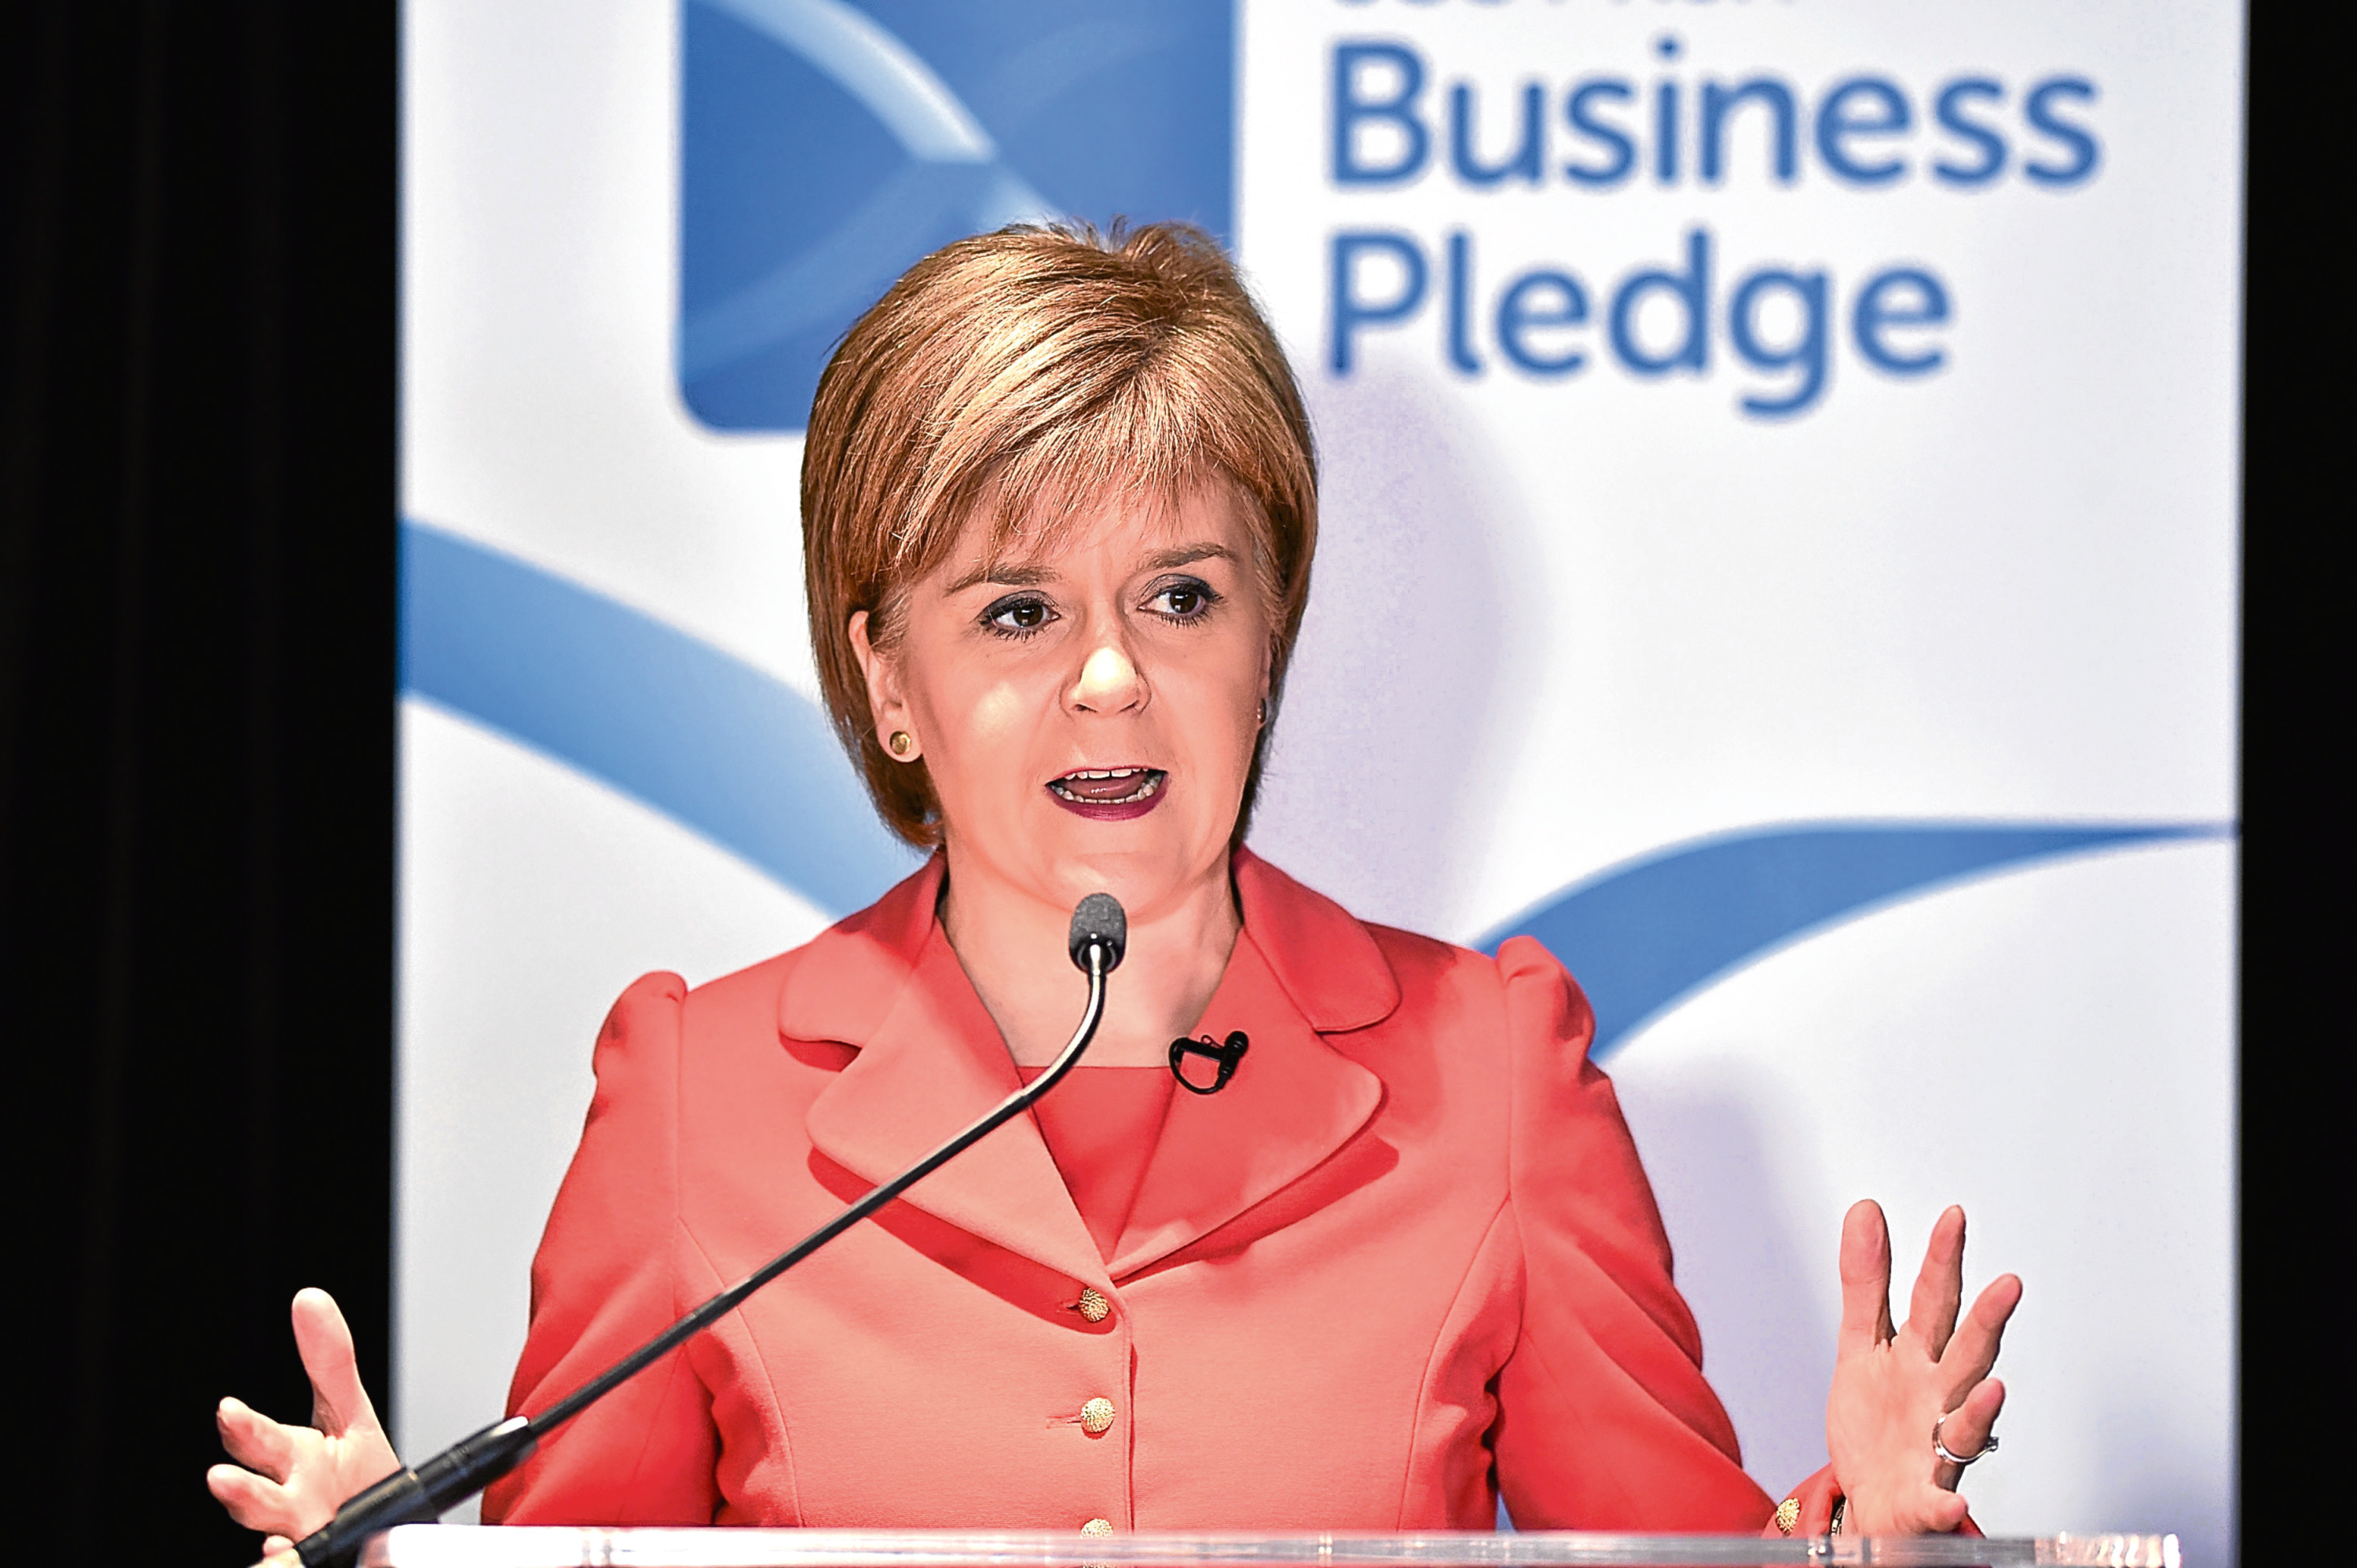 There is no appetite for another referendum, Nicola.....